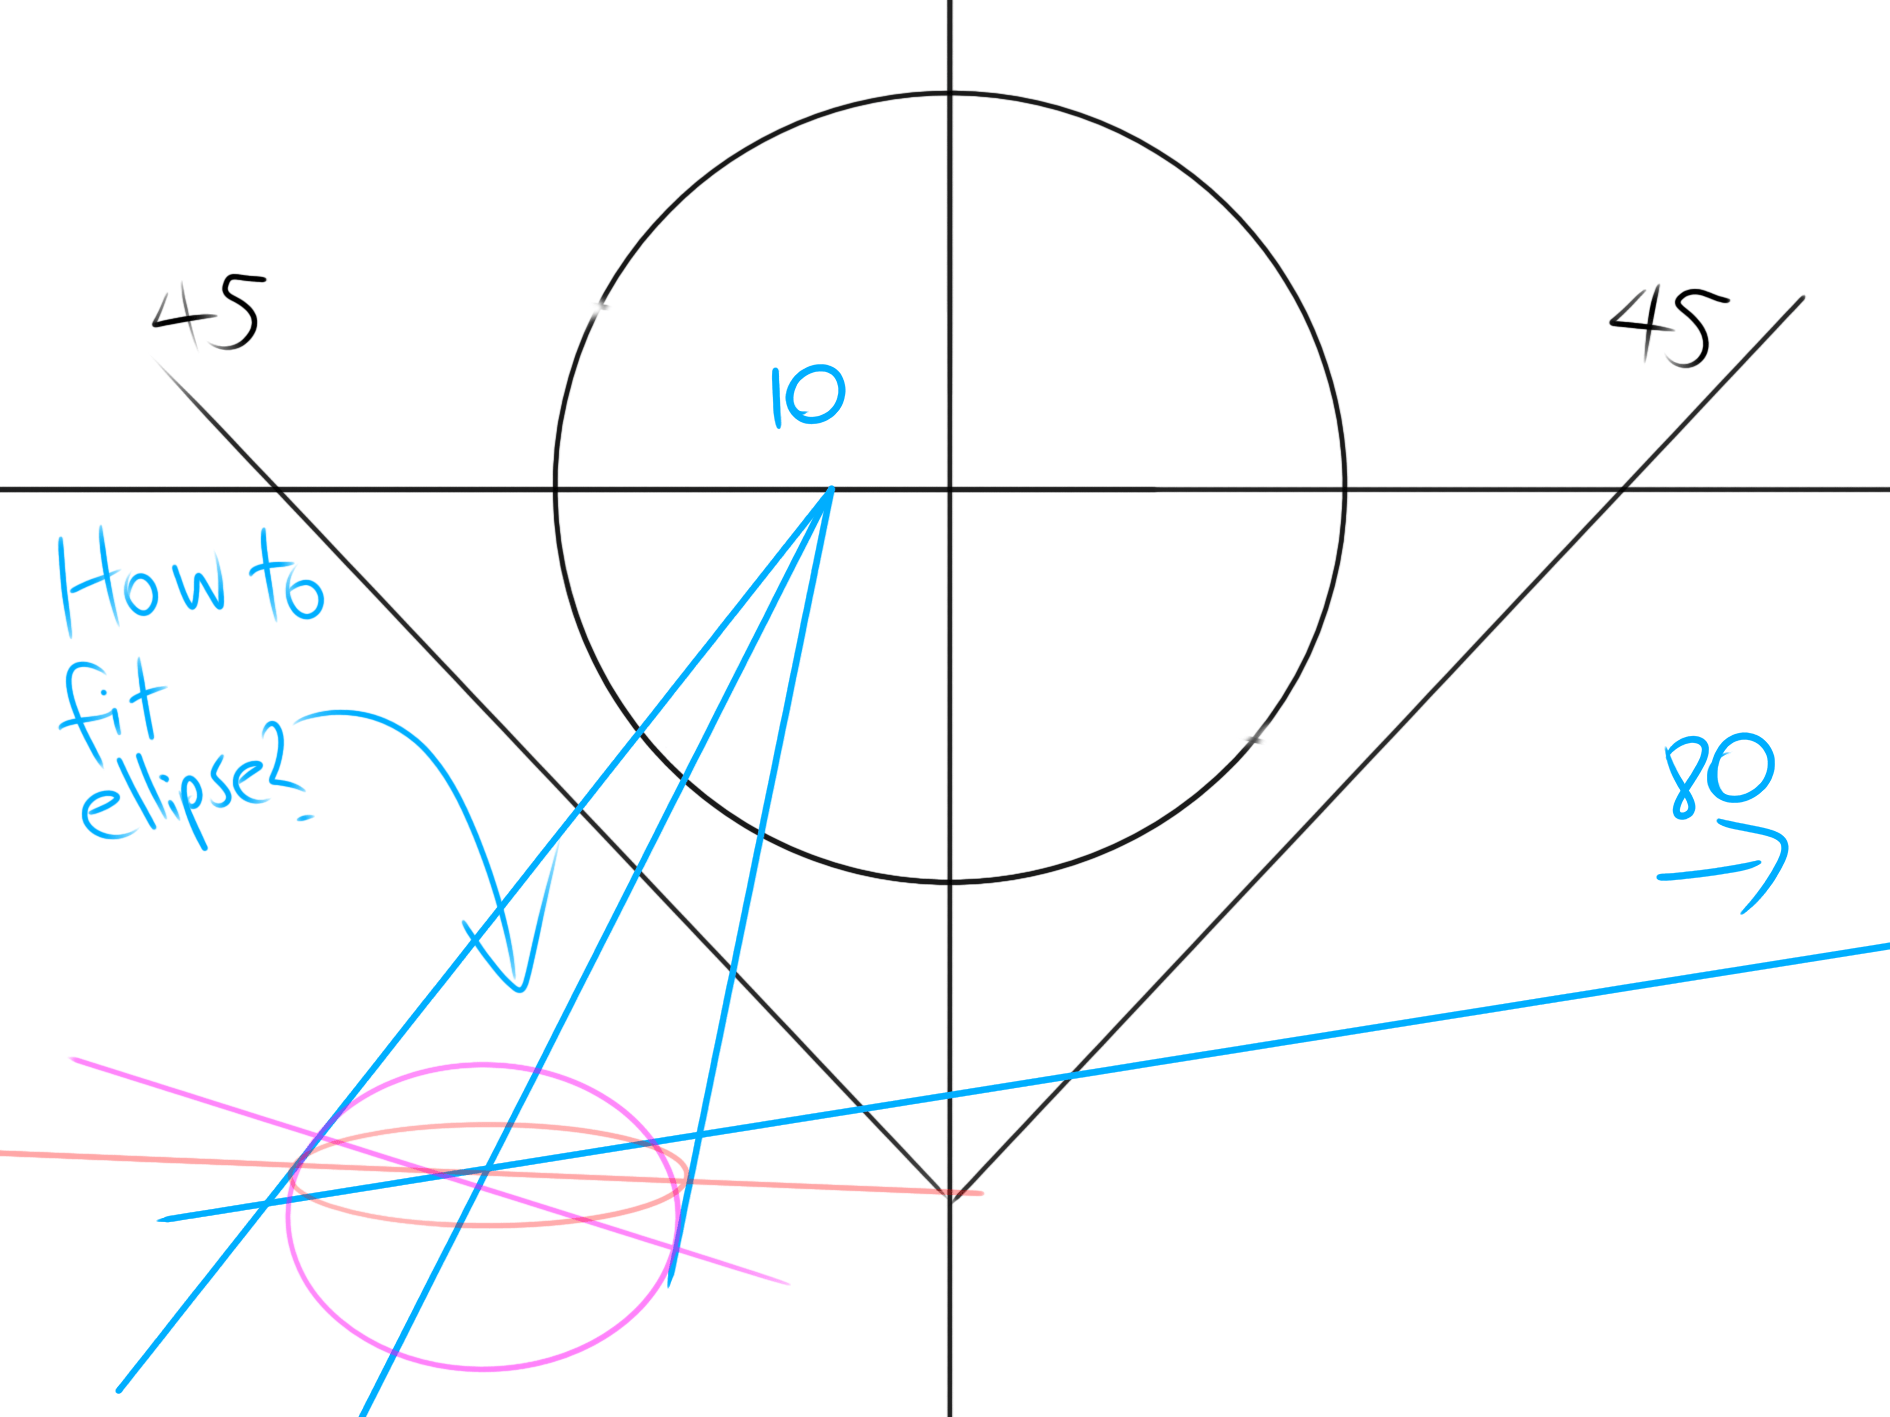 How To Draw Circle In 2 Point Perspective At This Position